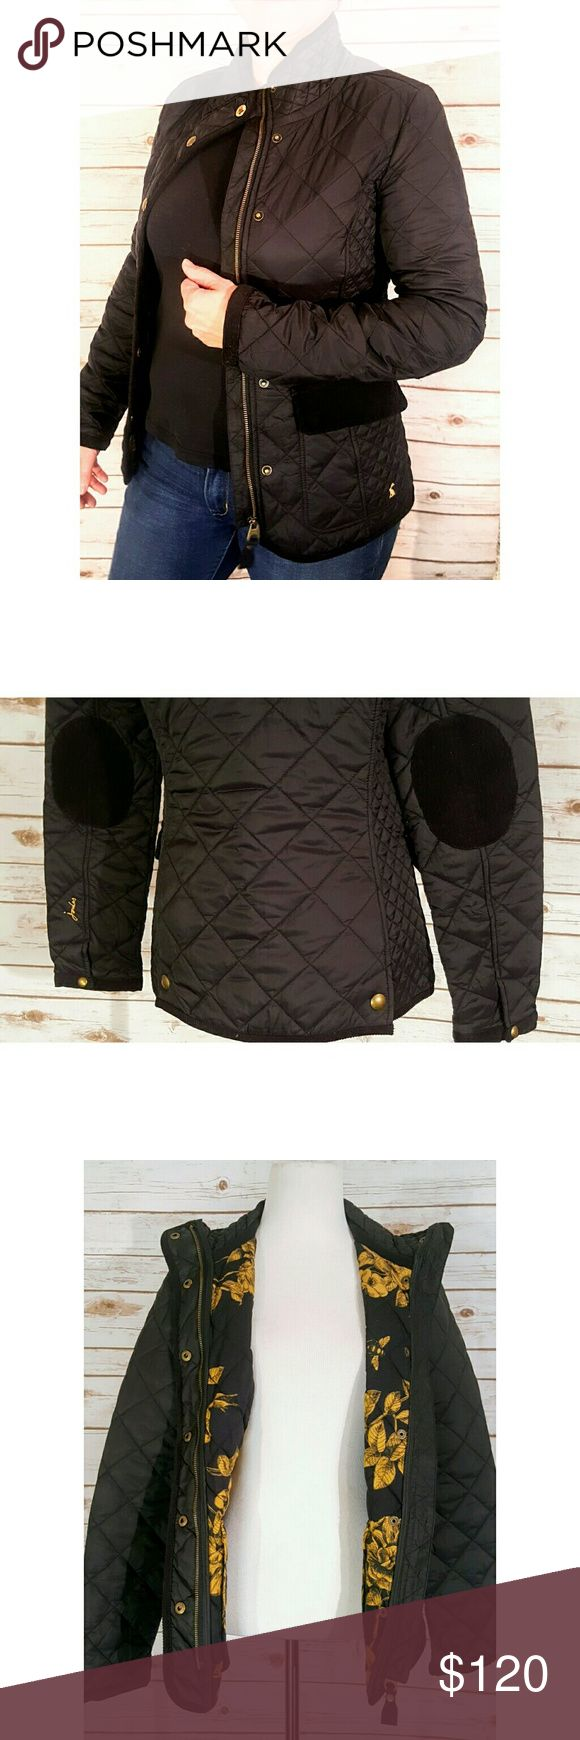 Joules Black Premium Quilted Zip Front Pea Coat Joules Black Luxury Quilted Zip Front Jacket Women's Size Medium Measurements on Request Excellent Like New Condition Condition Rank 9/10 Pre Owned Thanks We Ship Fast Updating New Items Daily Joules Jackets & Coats Pea Coats